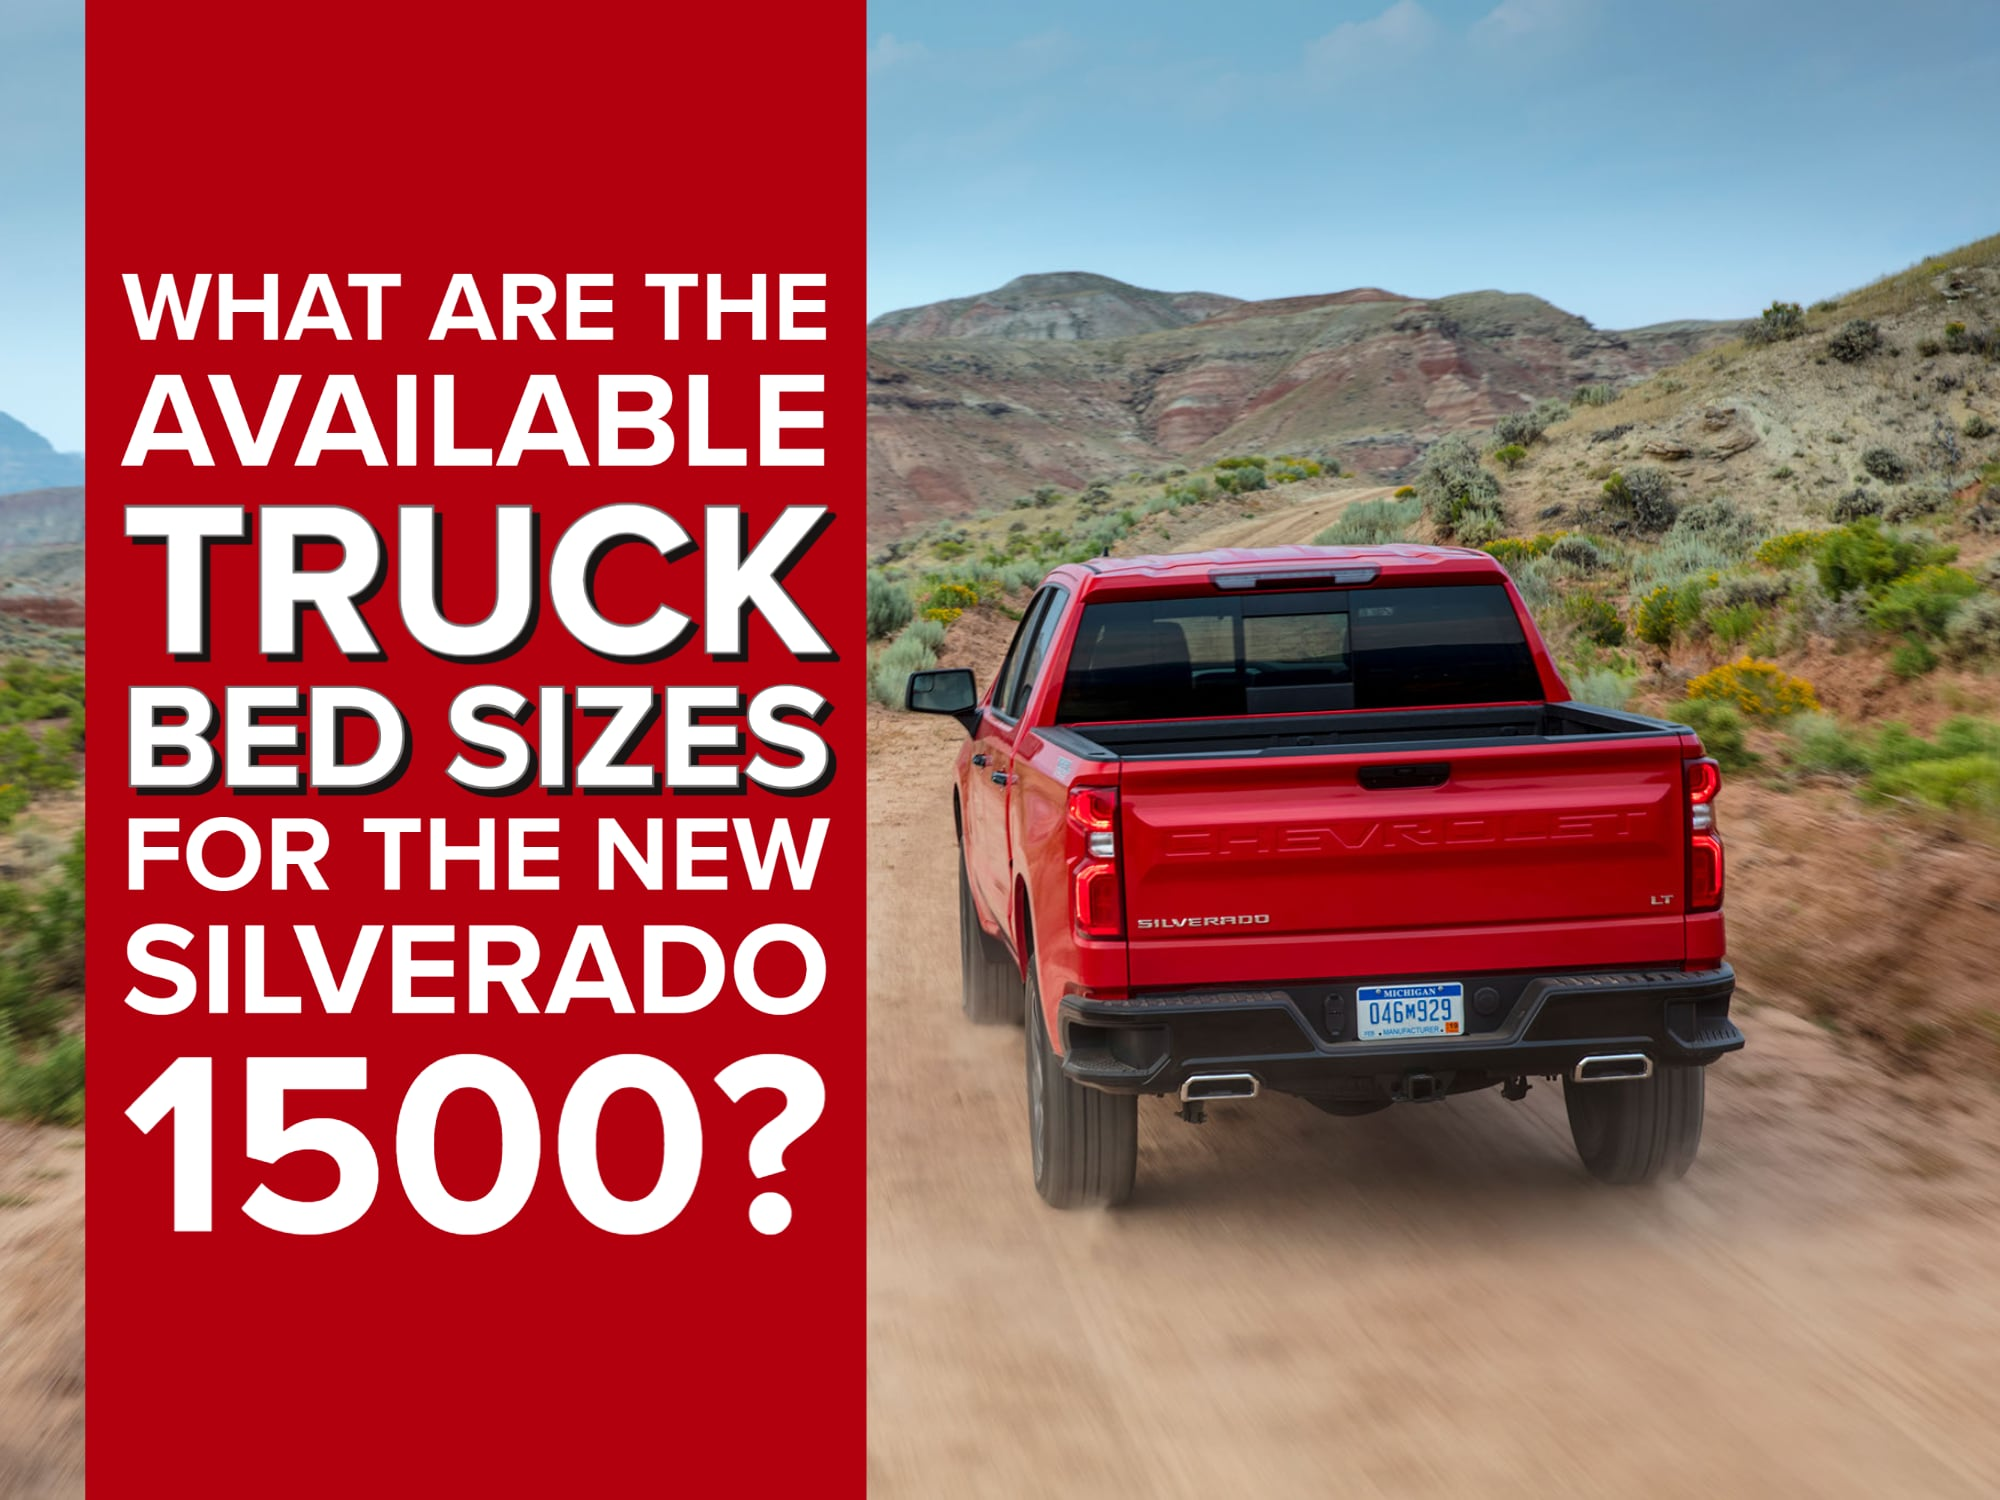 Rear View of red Silverado driving offroad